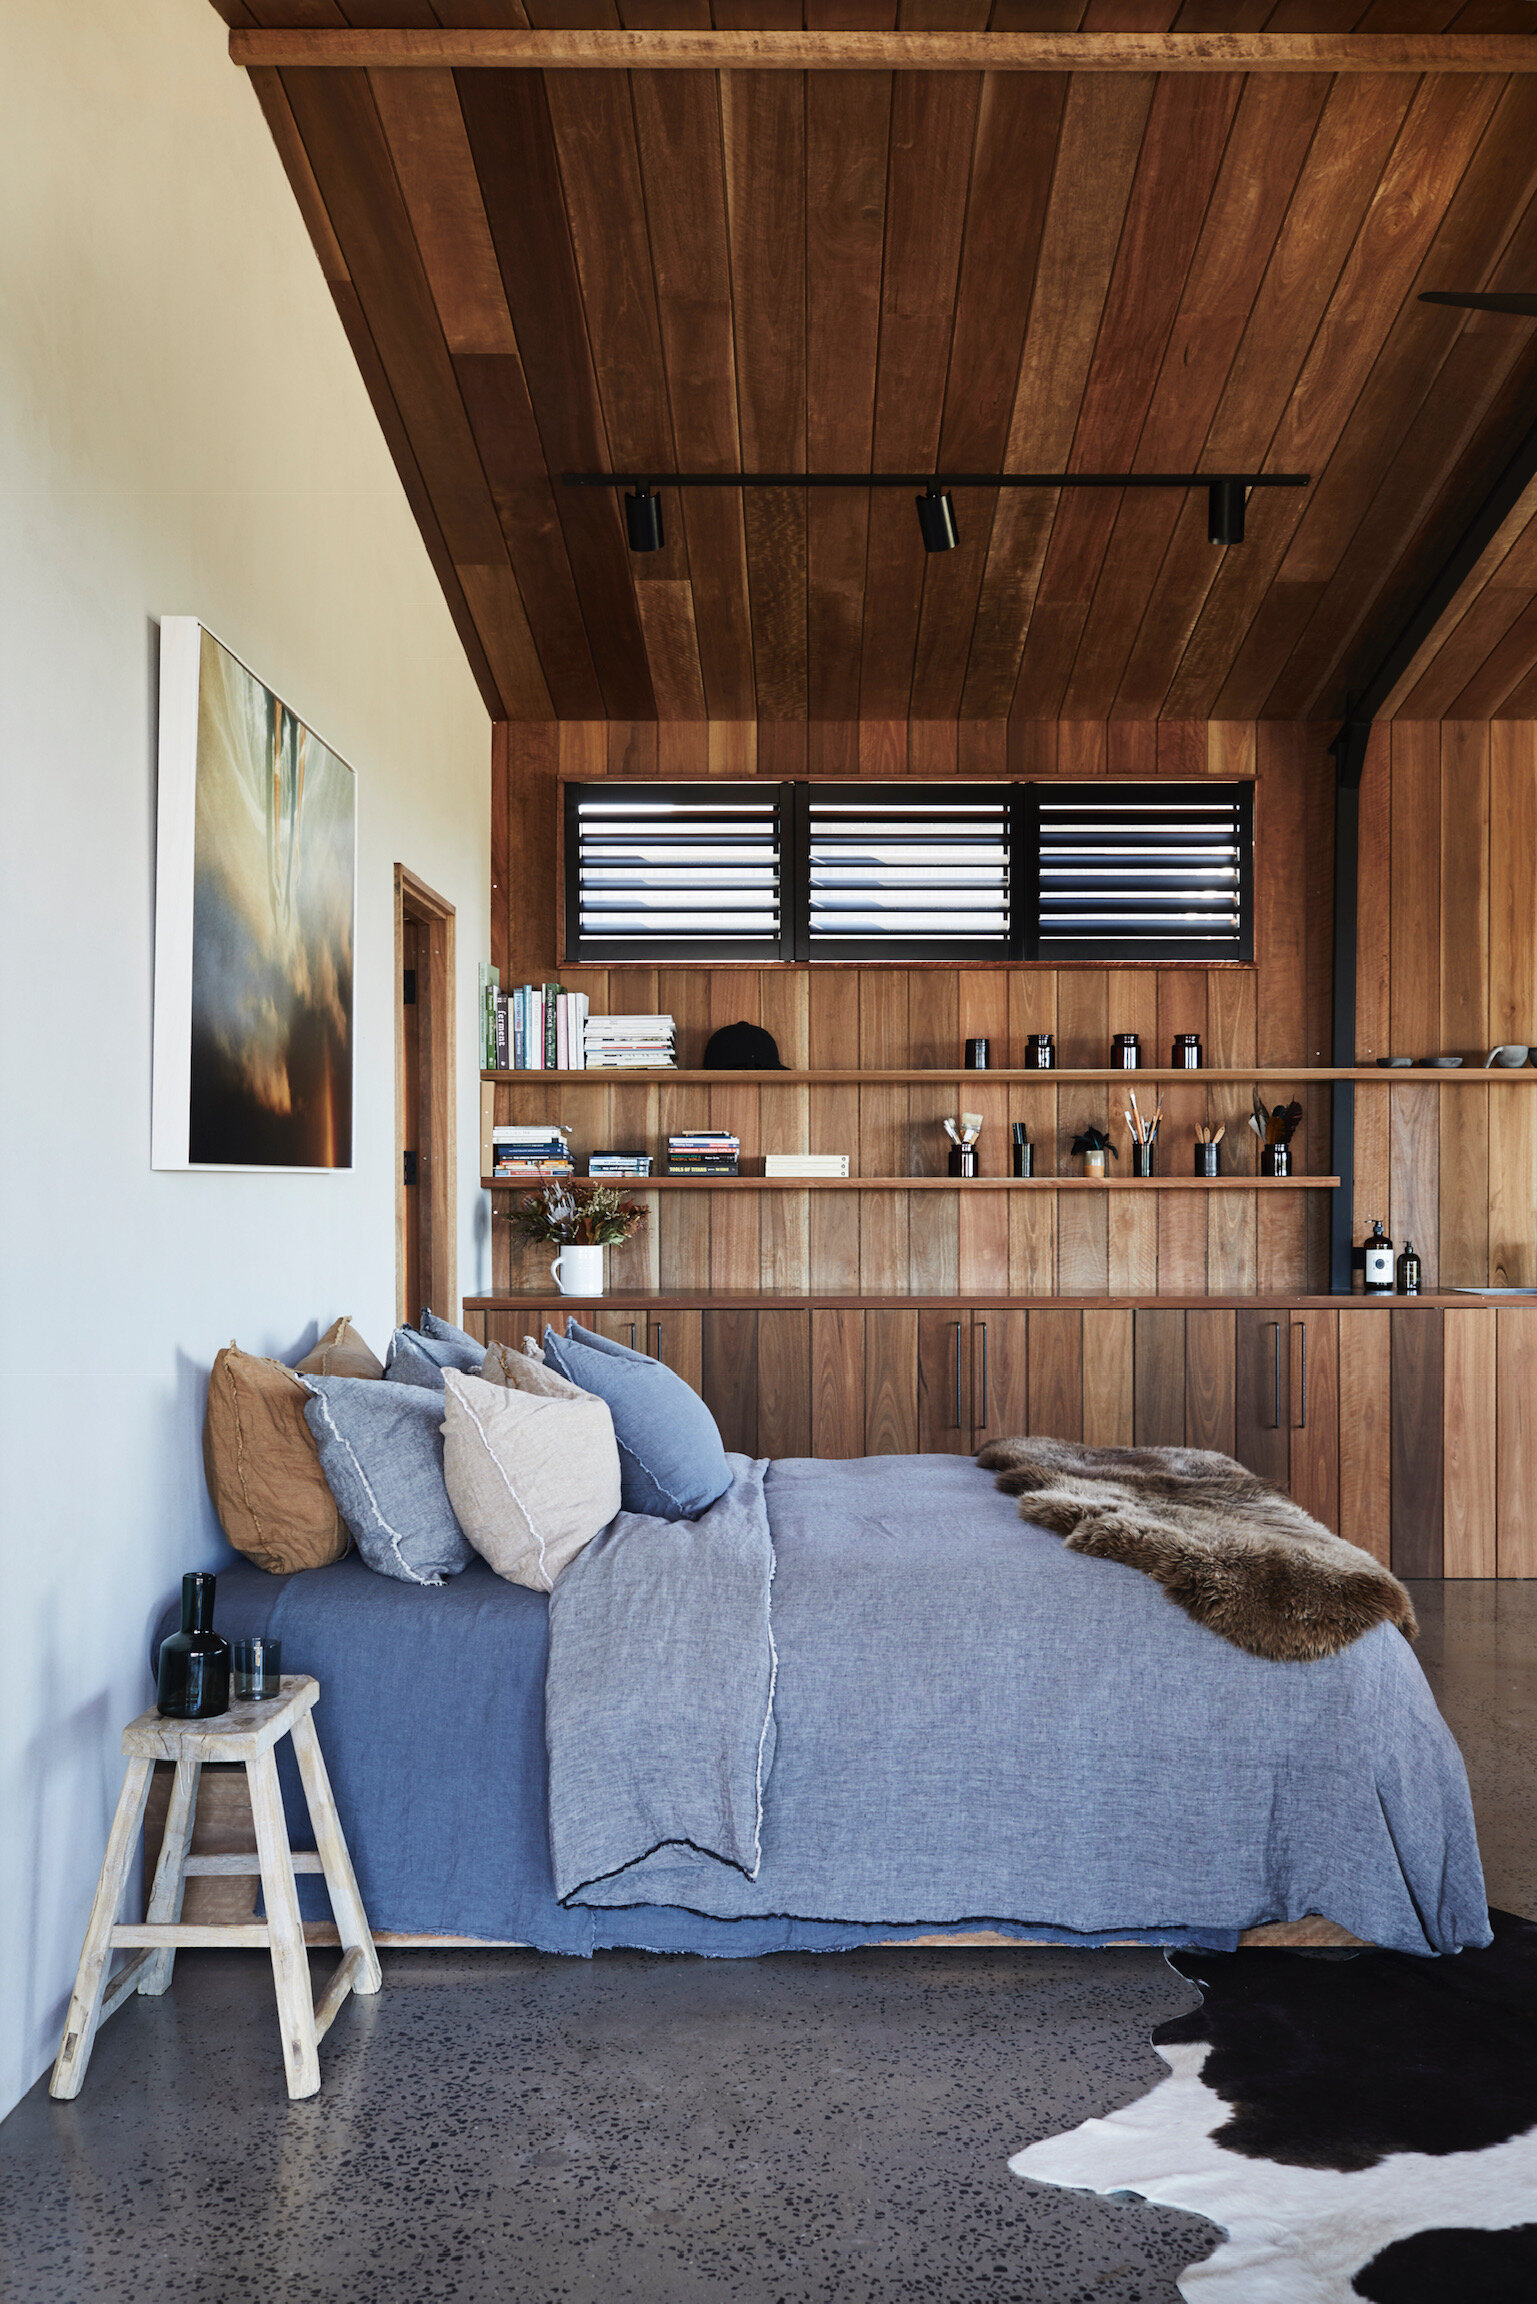 Textural heaven with timber, concrete and linen dominating one of the bedroom spaces. Photo - Alicia Taylor Photography.